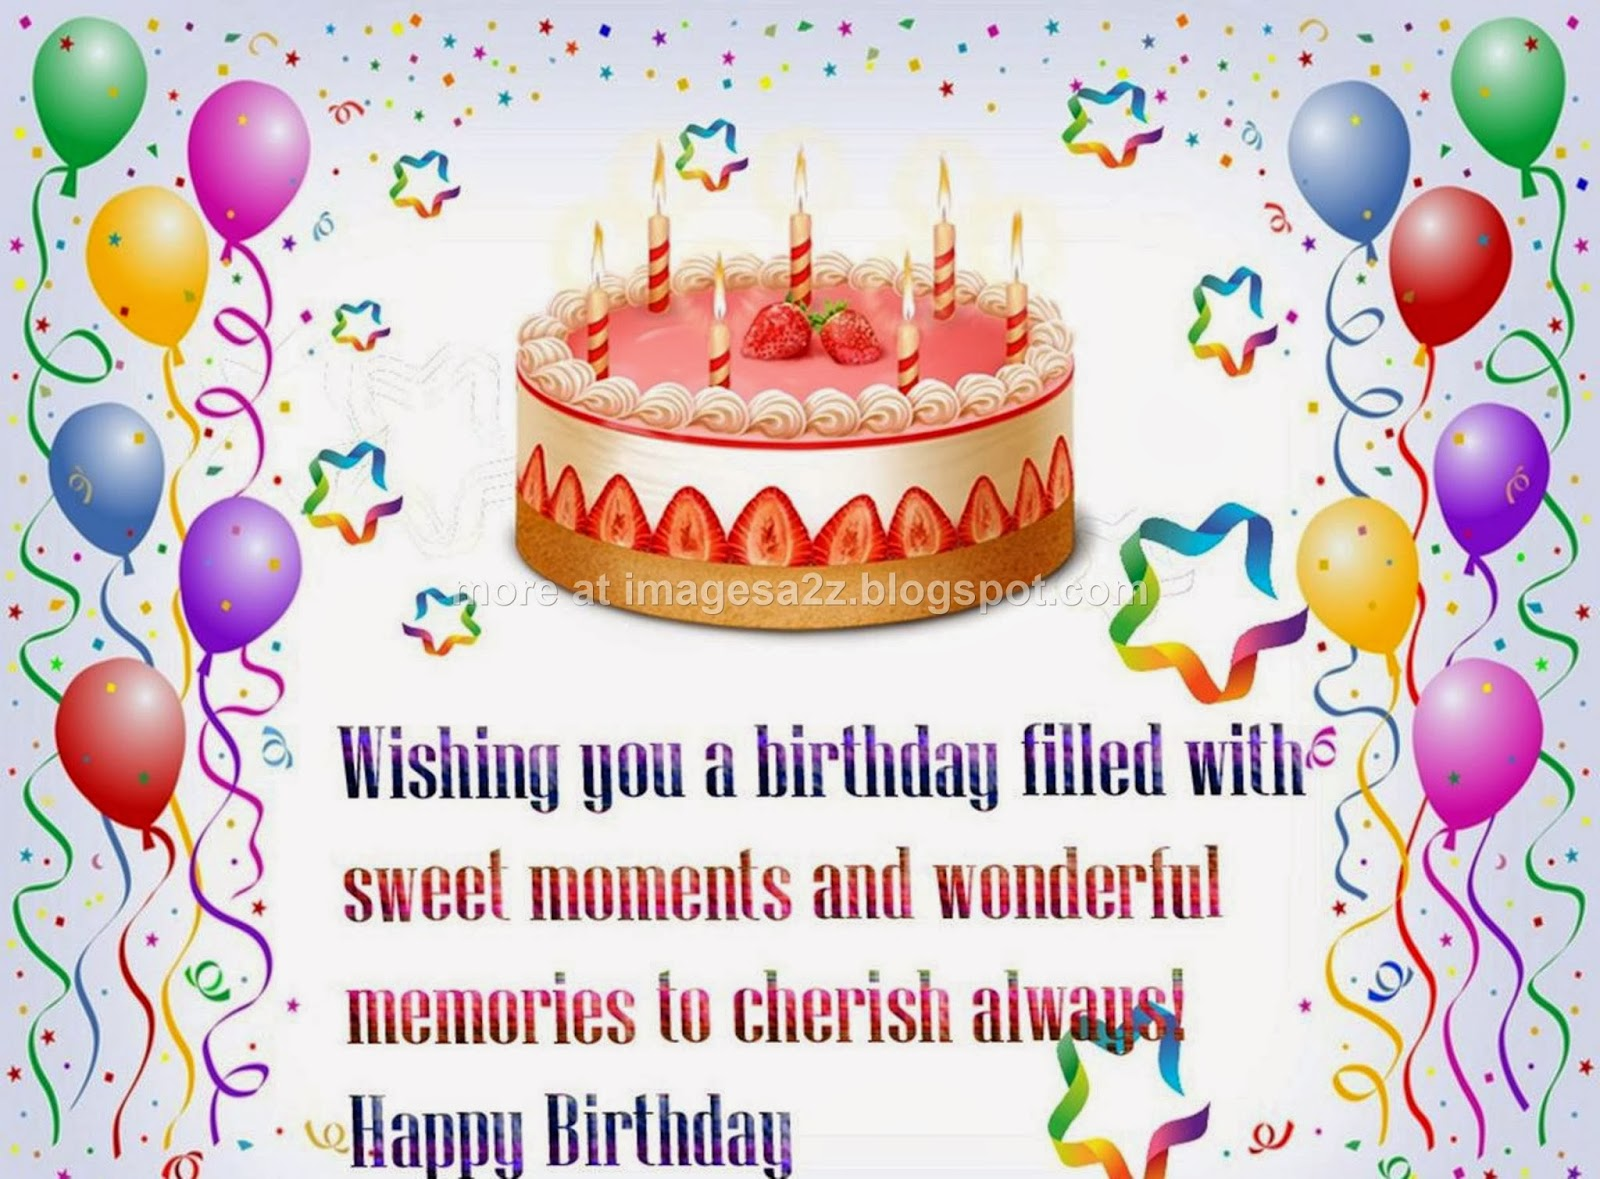 birthday wishes poems for best friend ; Birthday%252Bwishes%252BPoem%252Bfor%252Bbest%252Bfriends